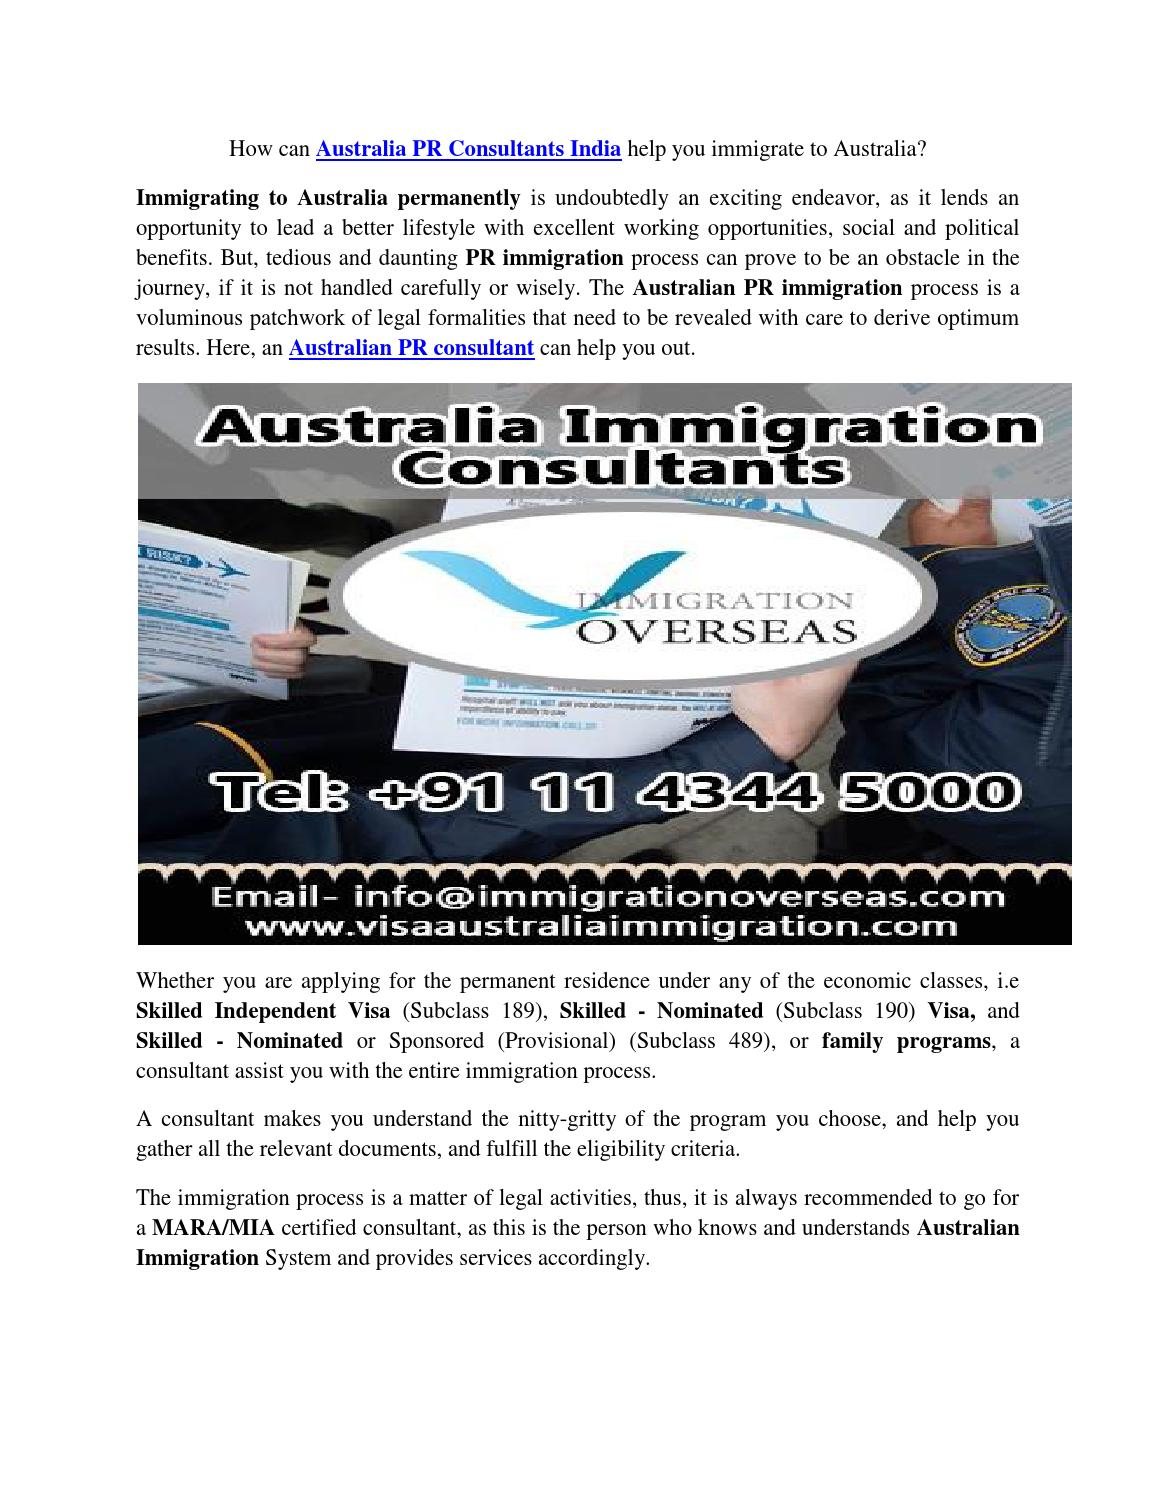 Avail quick, reliable Skilled Immigration Consultants in New